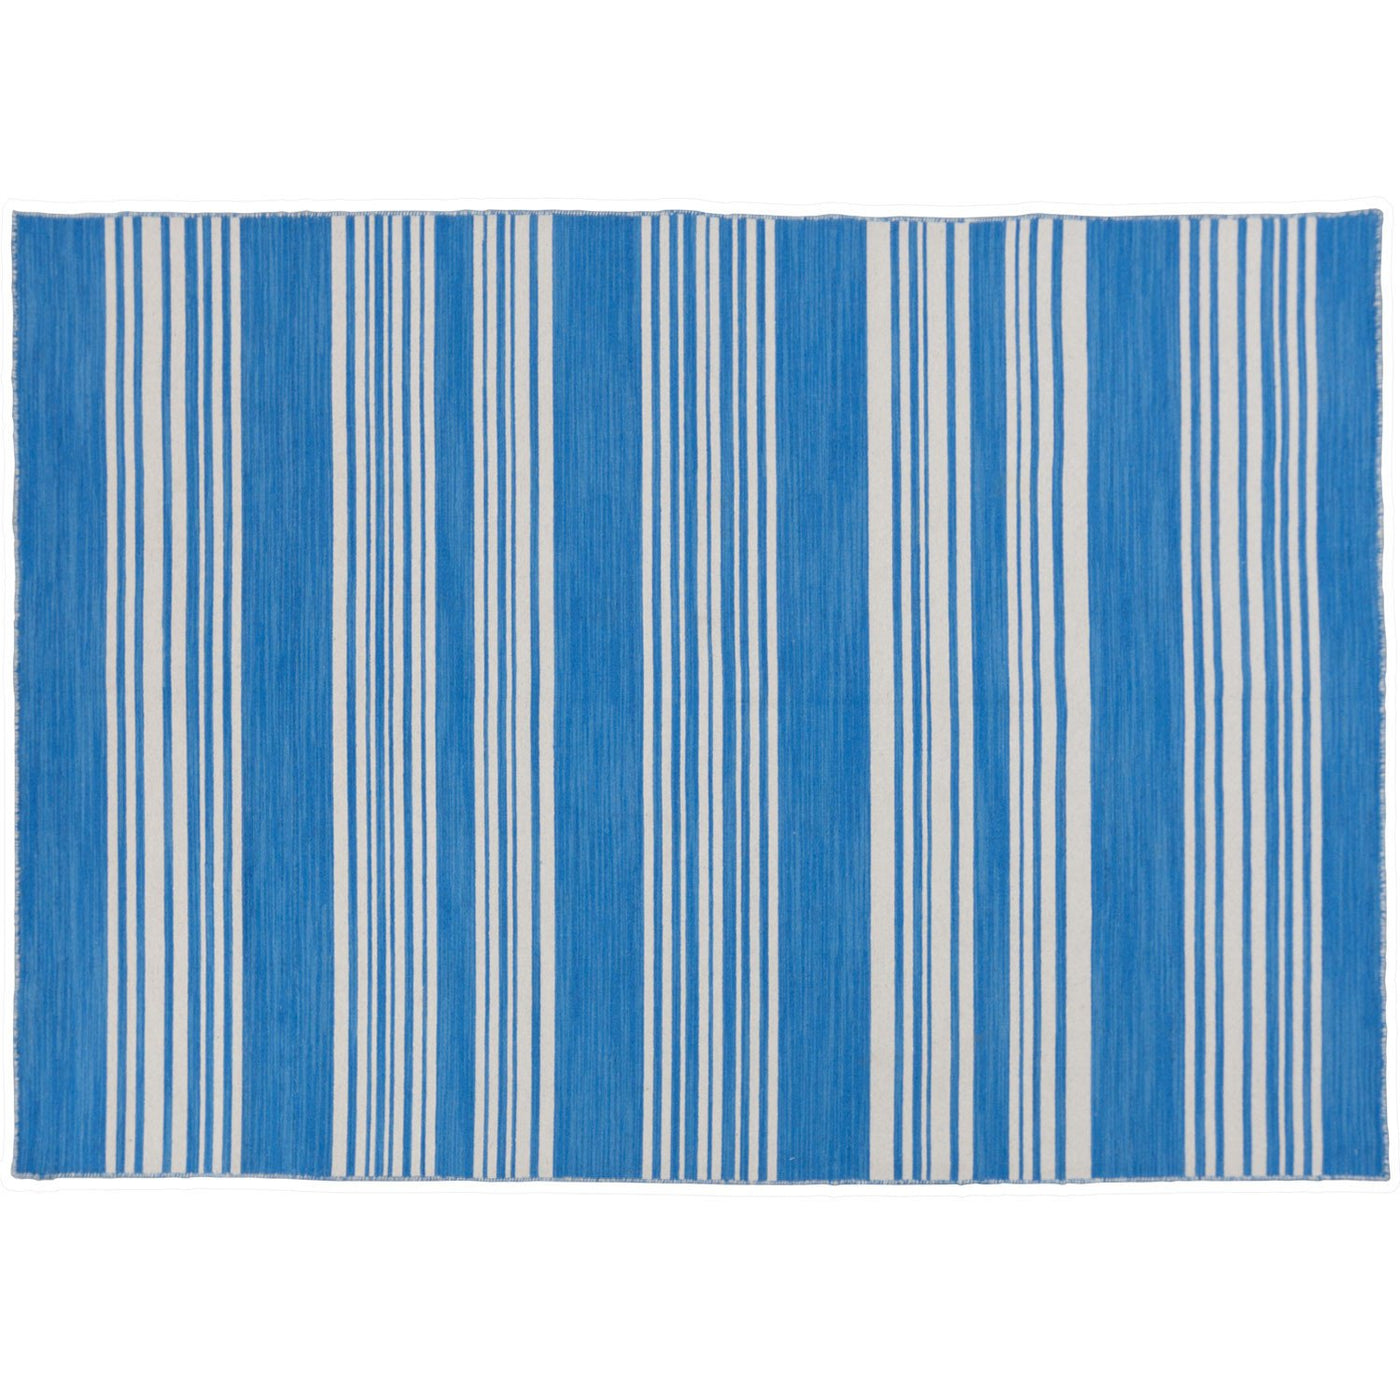 tribe home blue and white striped dhurrie rug